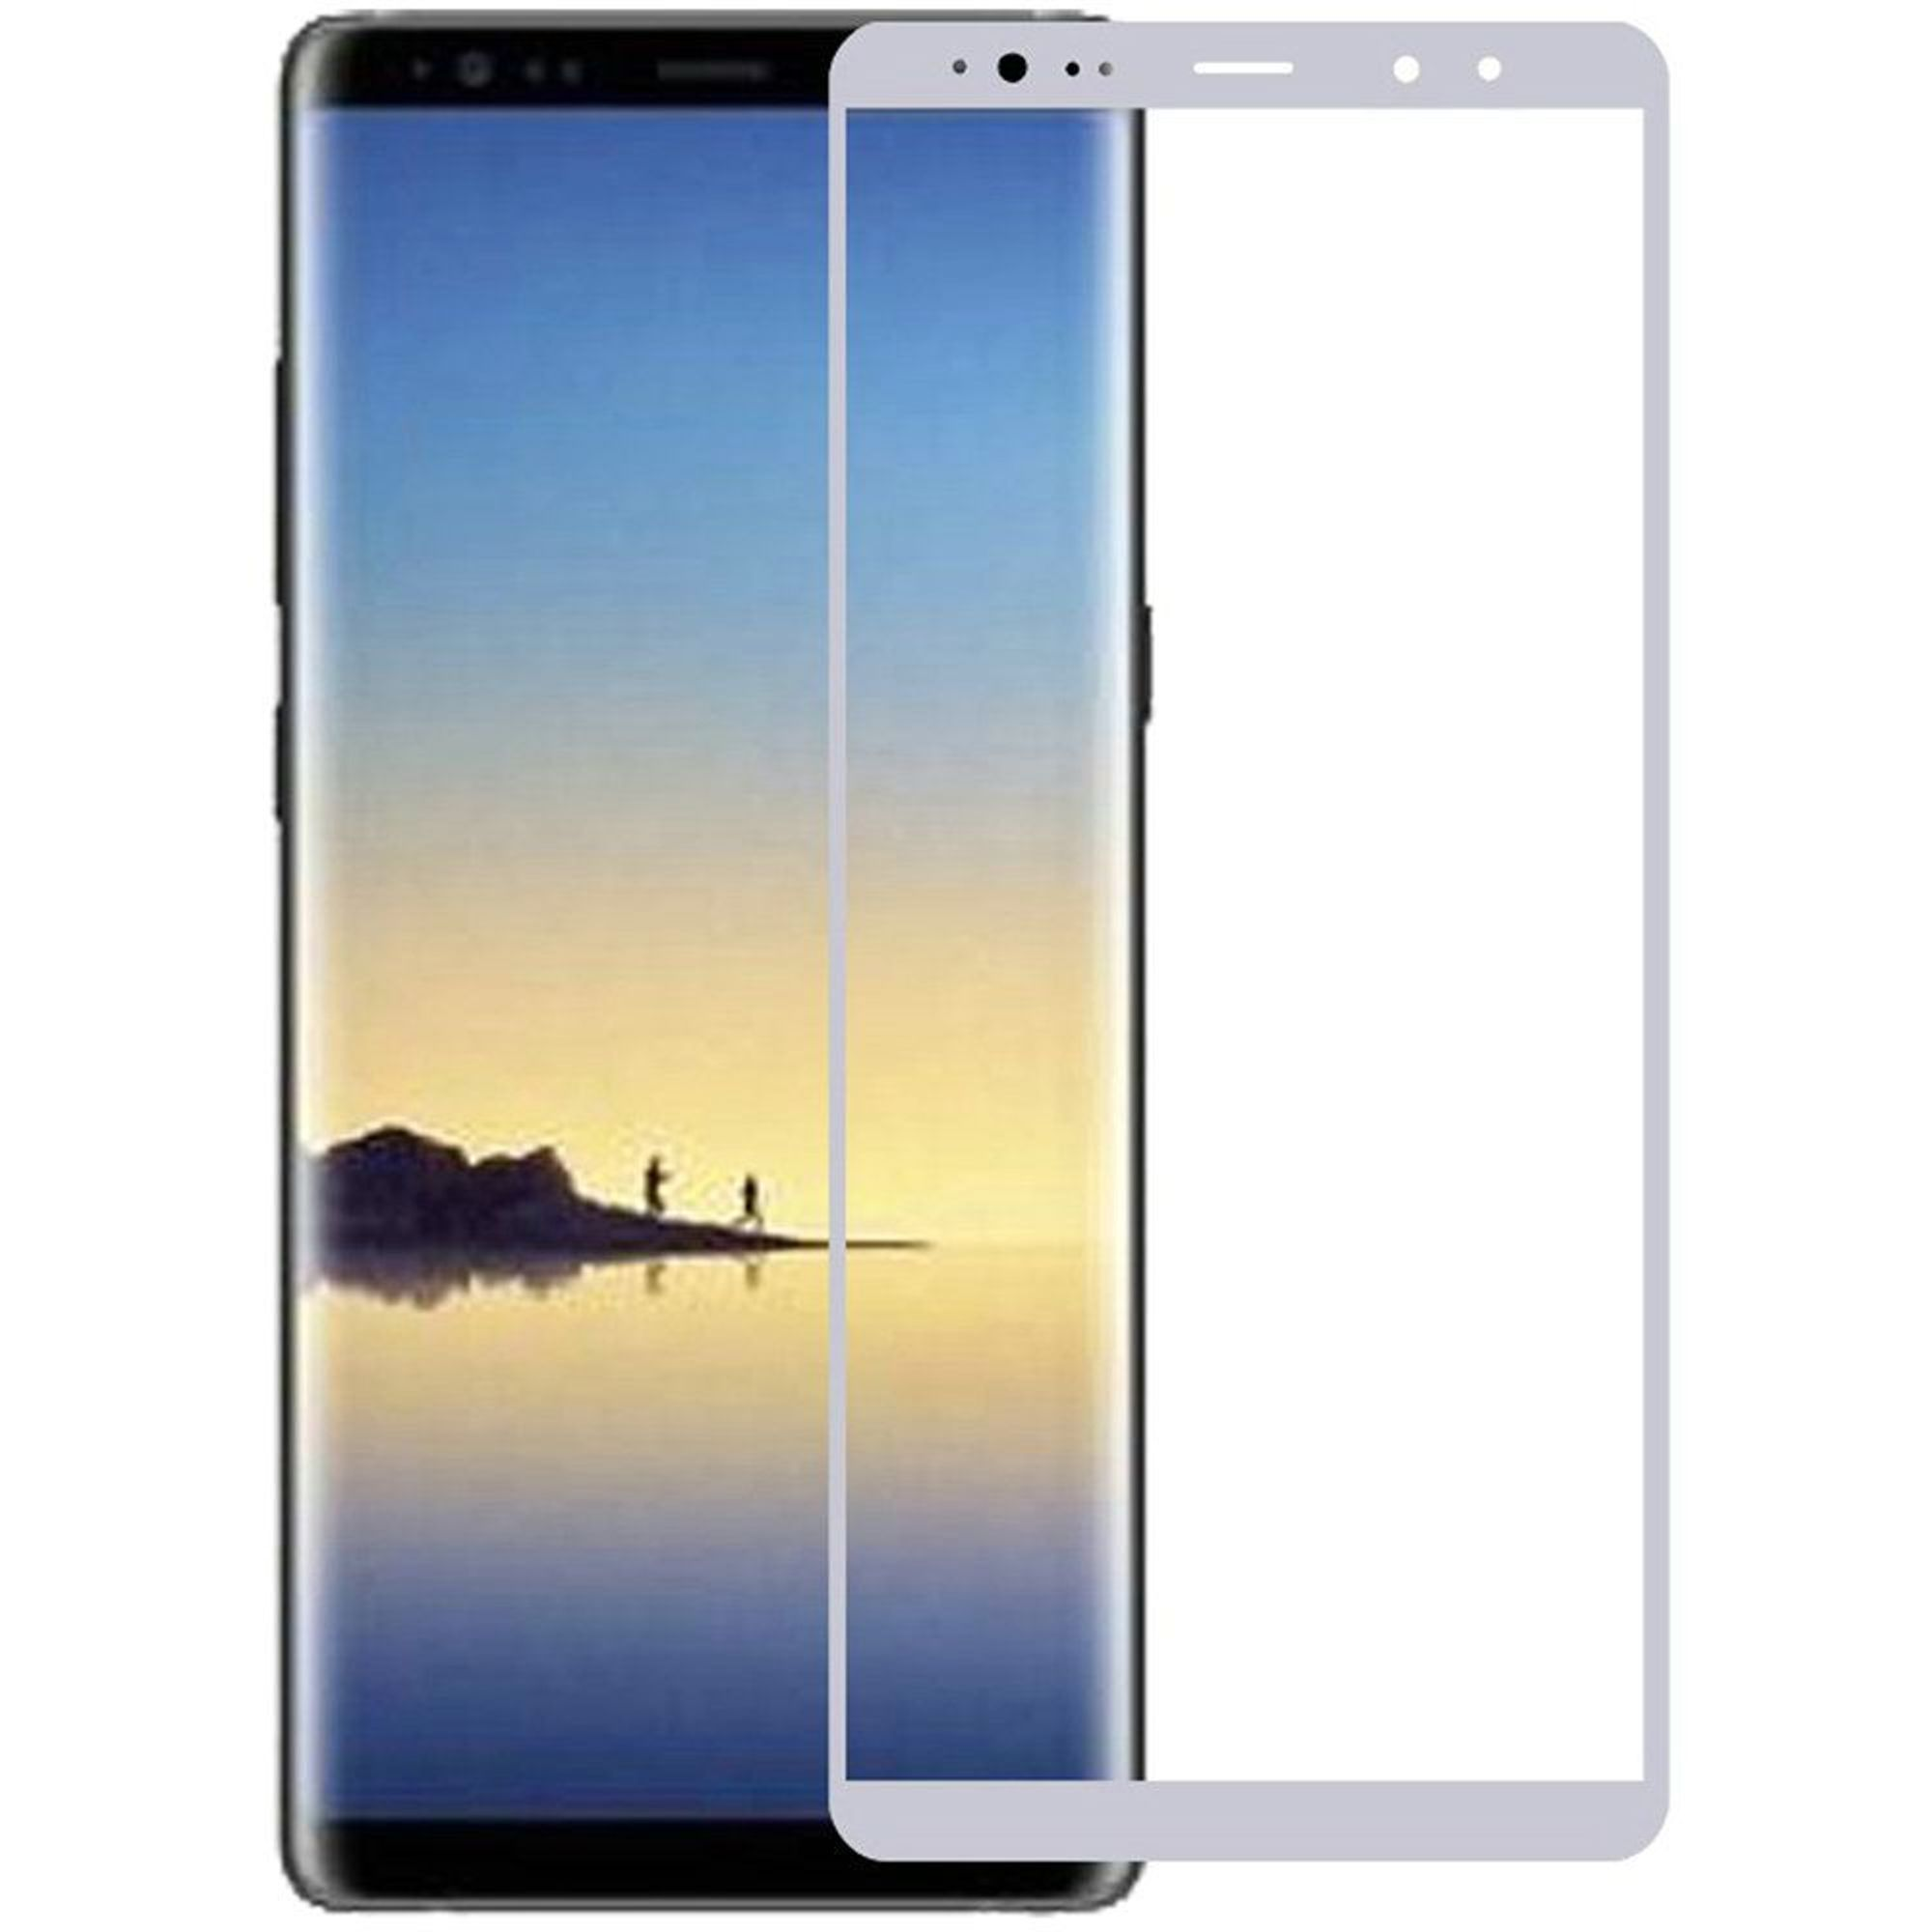 Samsung Galaxy Note 8 Screen Protector, by Insten Clear Tempered Glass Screen Protector LCD Film Guard Shield for Samsung Galaxy Note 8, Silver